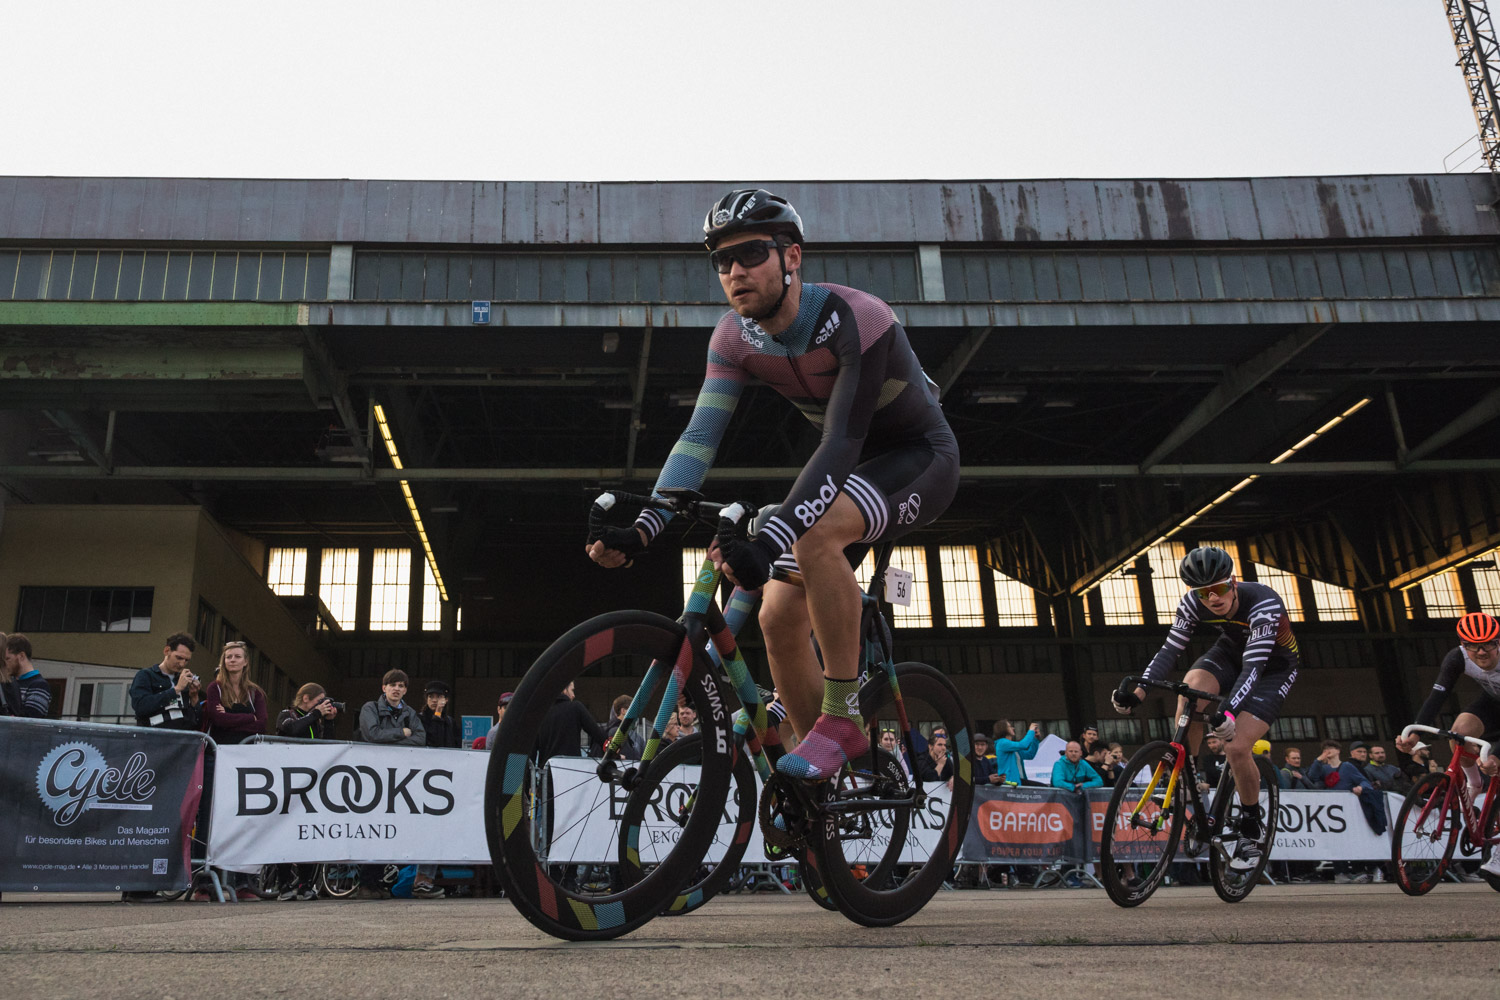 8brcrit 8bar team fixed gear crit 24 - Fast, Faster, 8bar crit 2018 - the race review!